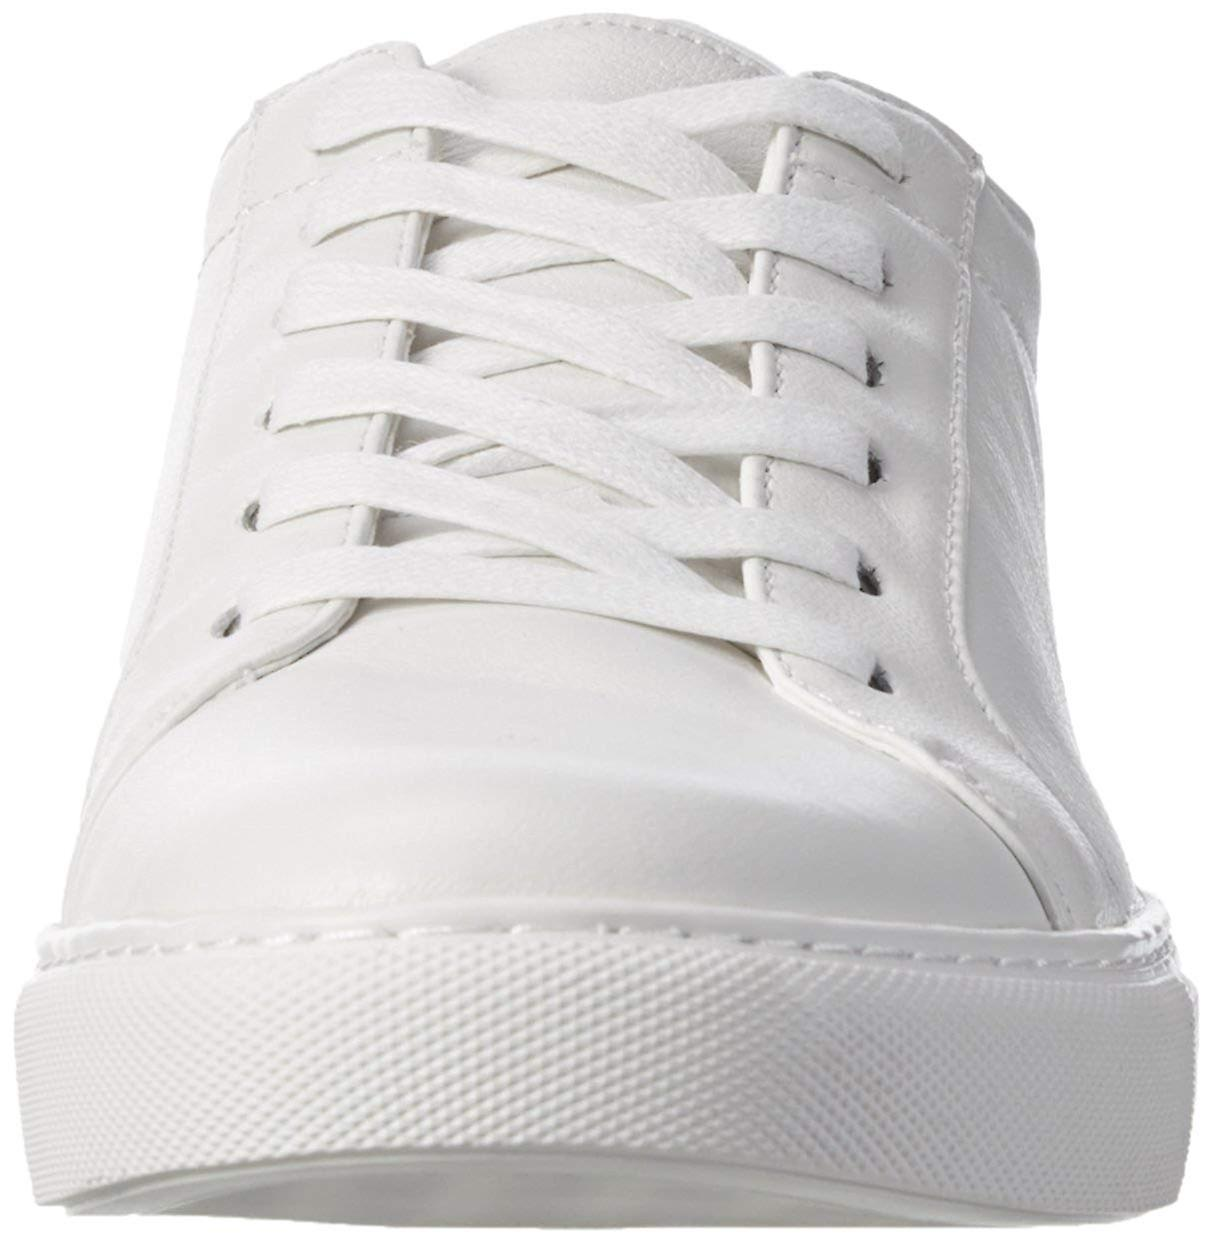 Kenneth Cole New York Womens kam Suede Low haut Lace Up mode Sneakers bmeWOb